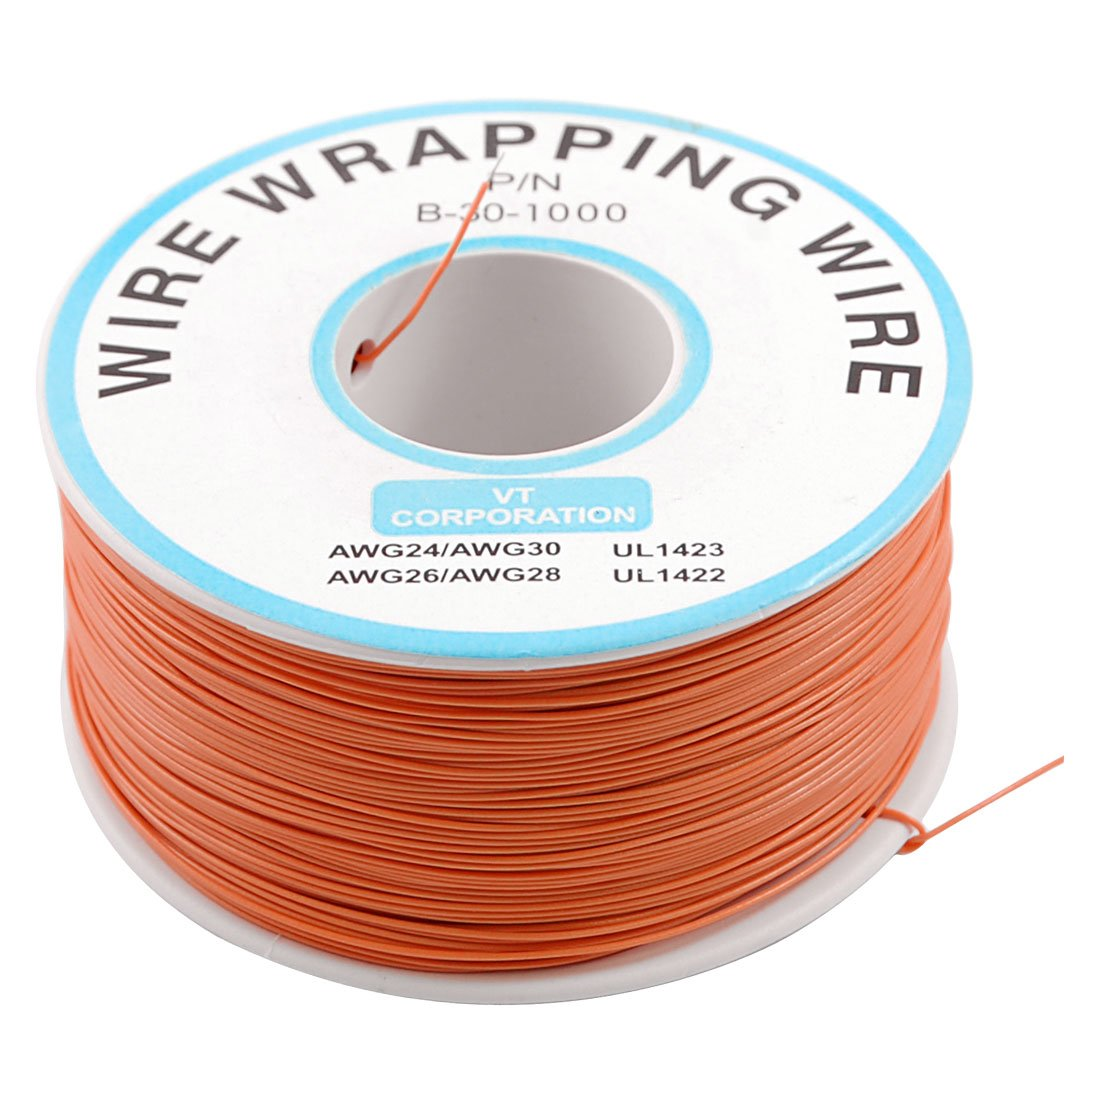 Orange 0.5mm 30AWG Wire Wrapping Wrap Flexible insulation tin-plated Jumper Cable 1000Ft PCB Solder electronic test motherboard new 30awg 0 25mm tin plated copper wire wrapping insulation test cable 8 colored wrap reel tin plated copper plastic